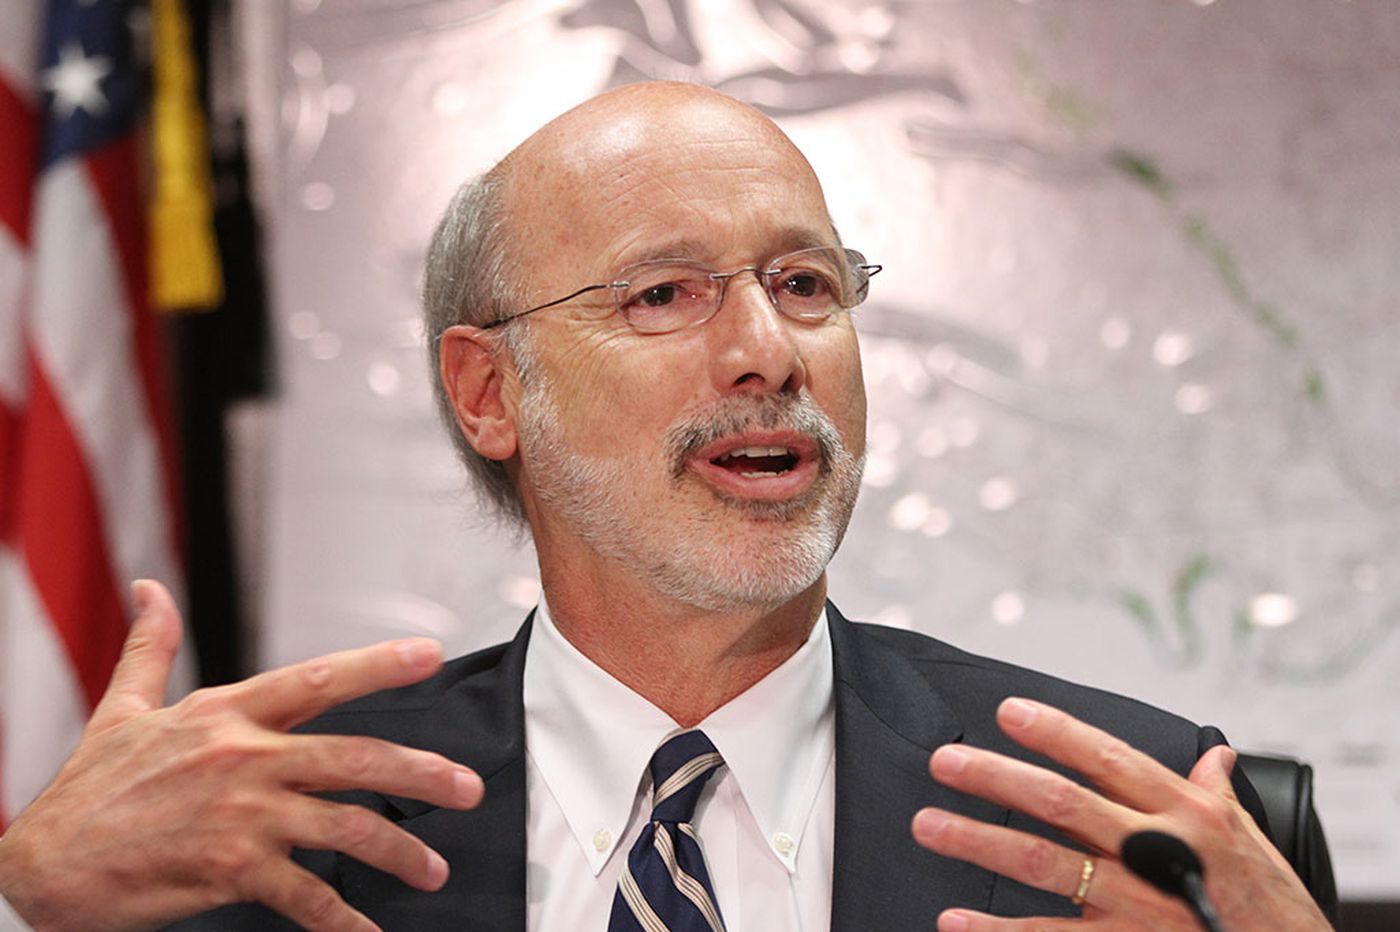 In latest plan, Wolf backs off Pa. sales tax hike